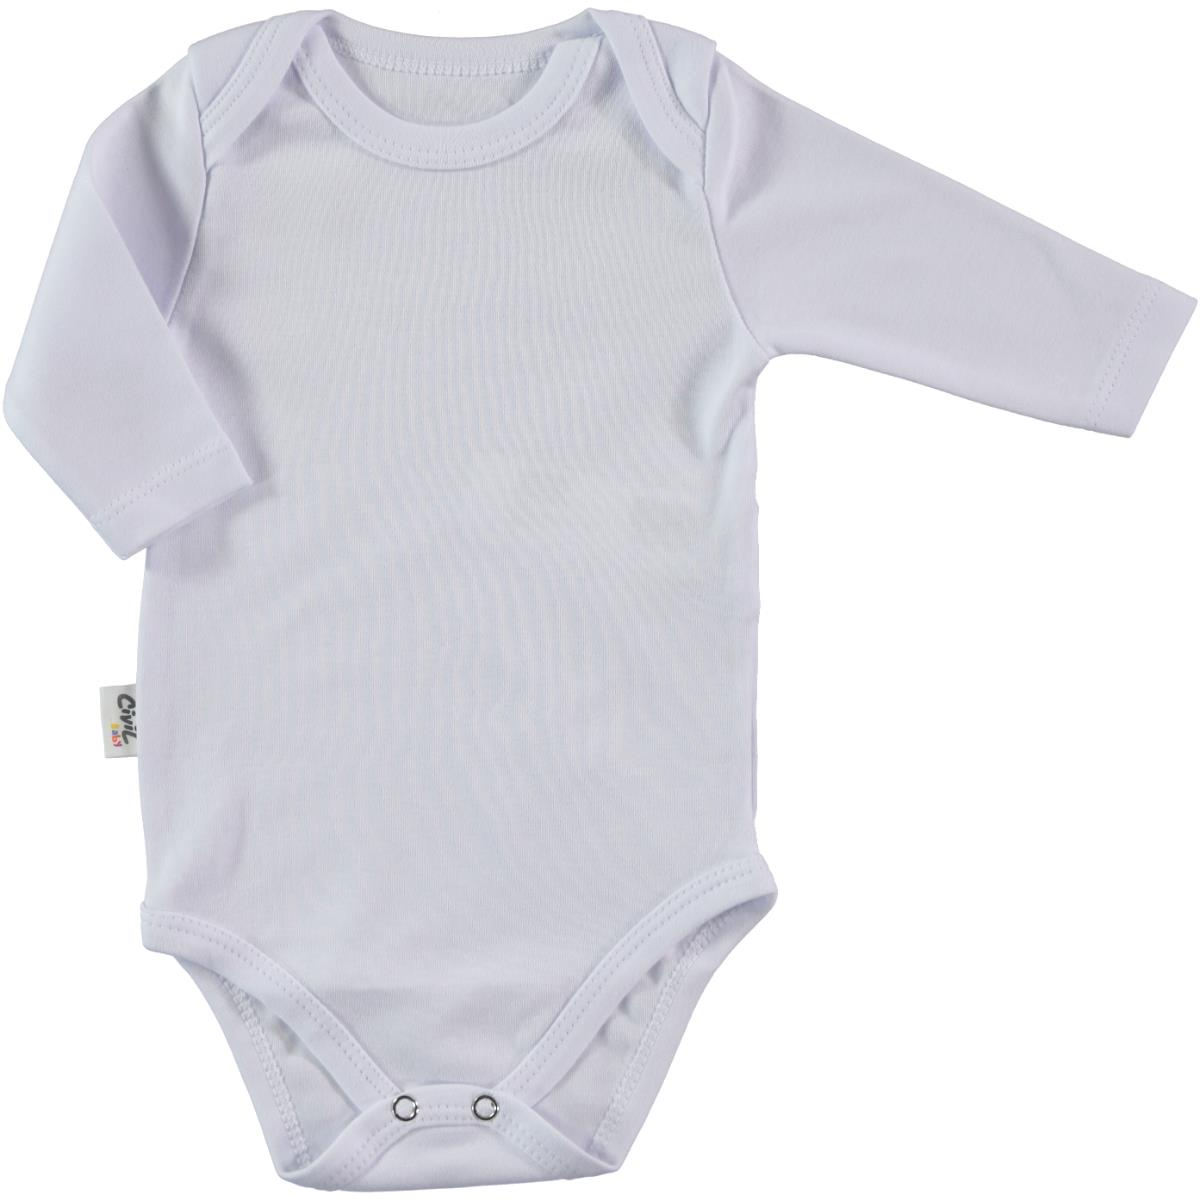 Civil Baby With Snaps White Bodysuit 3-36 Months Baby